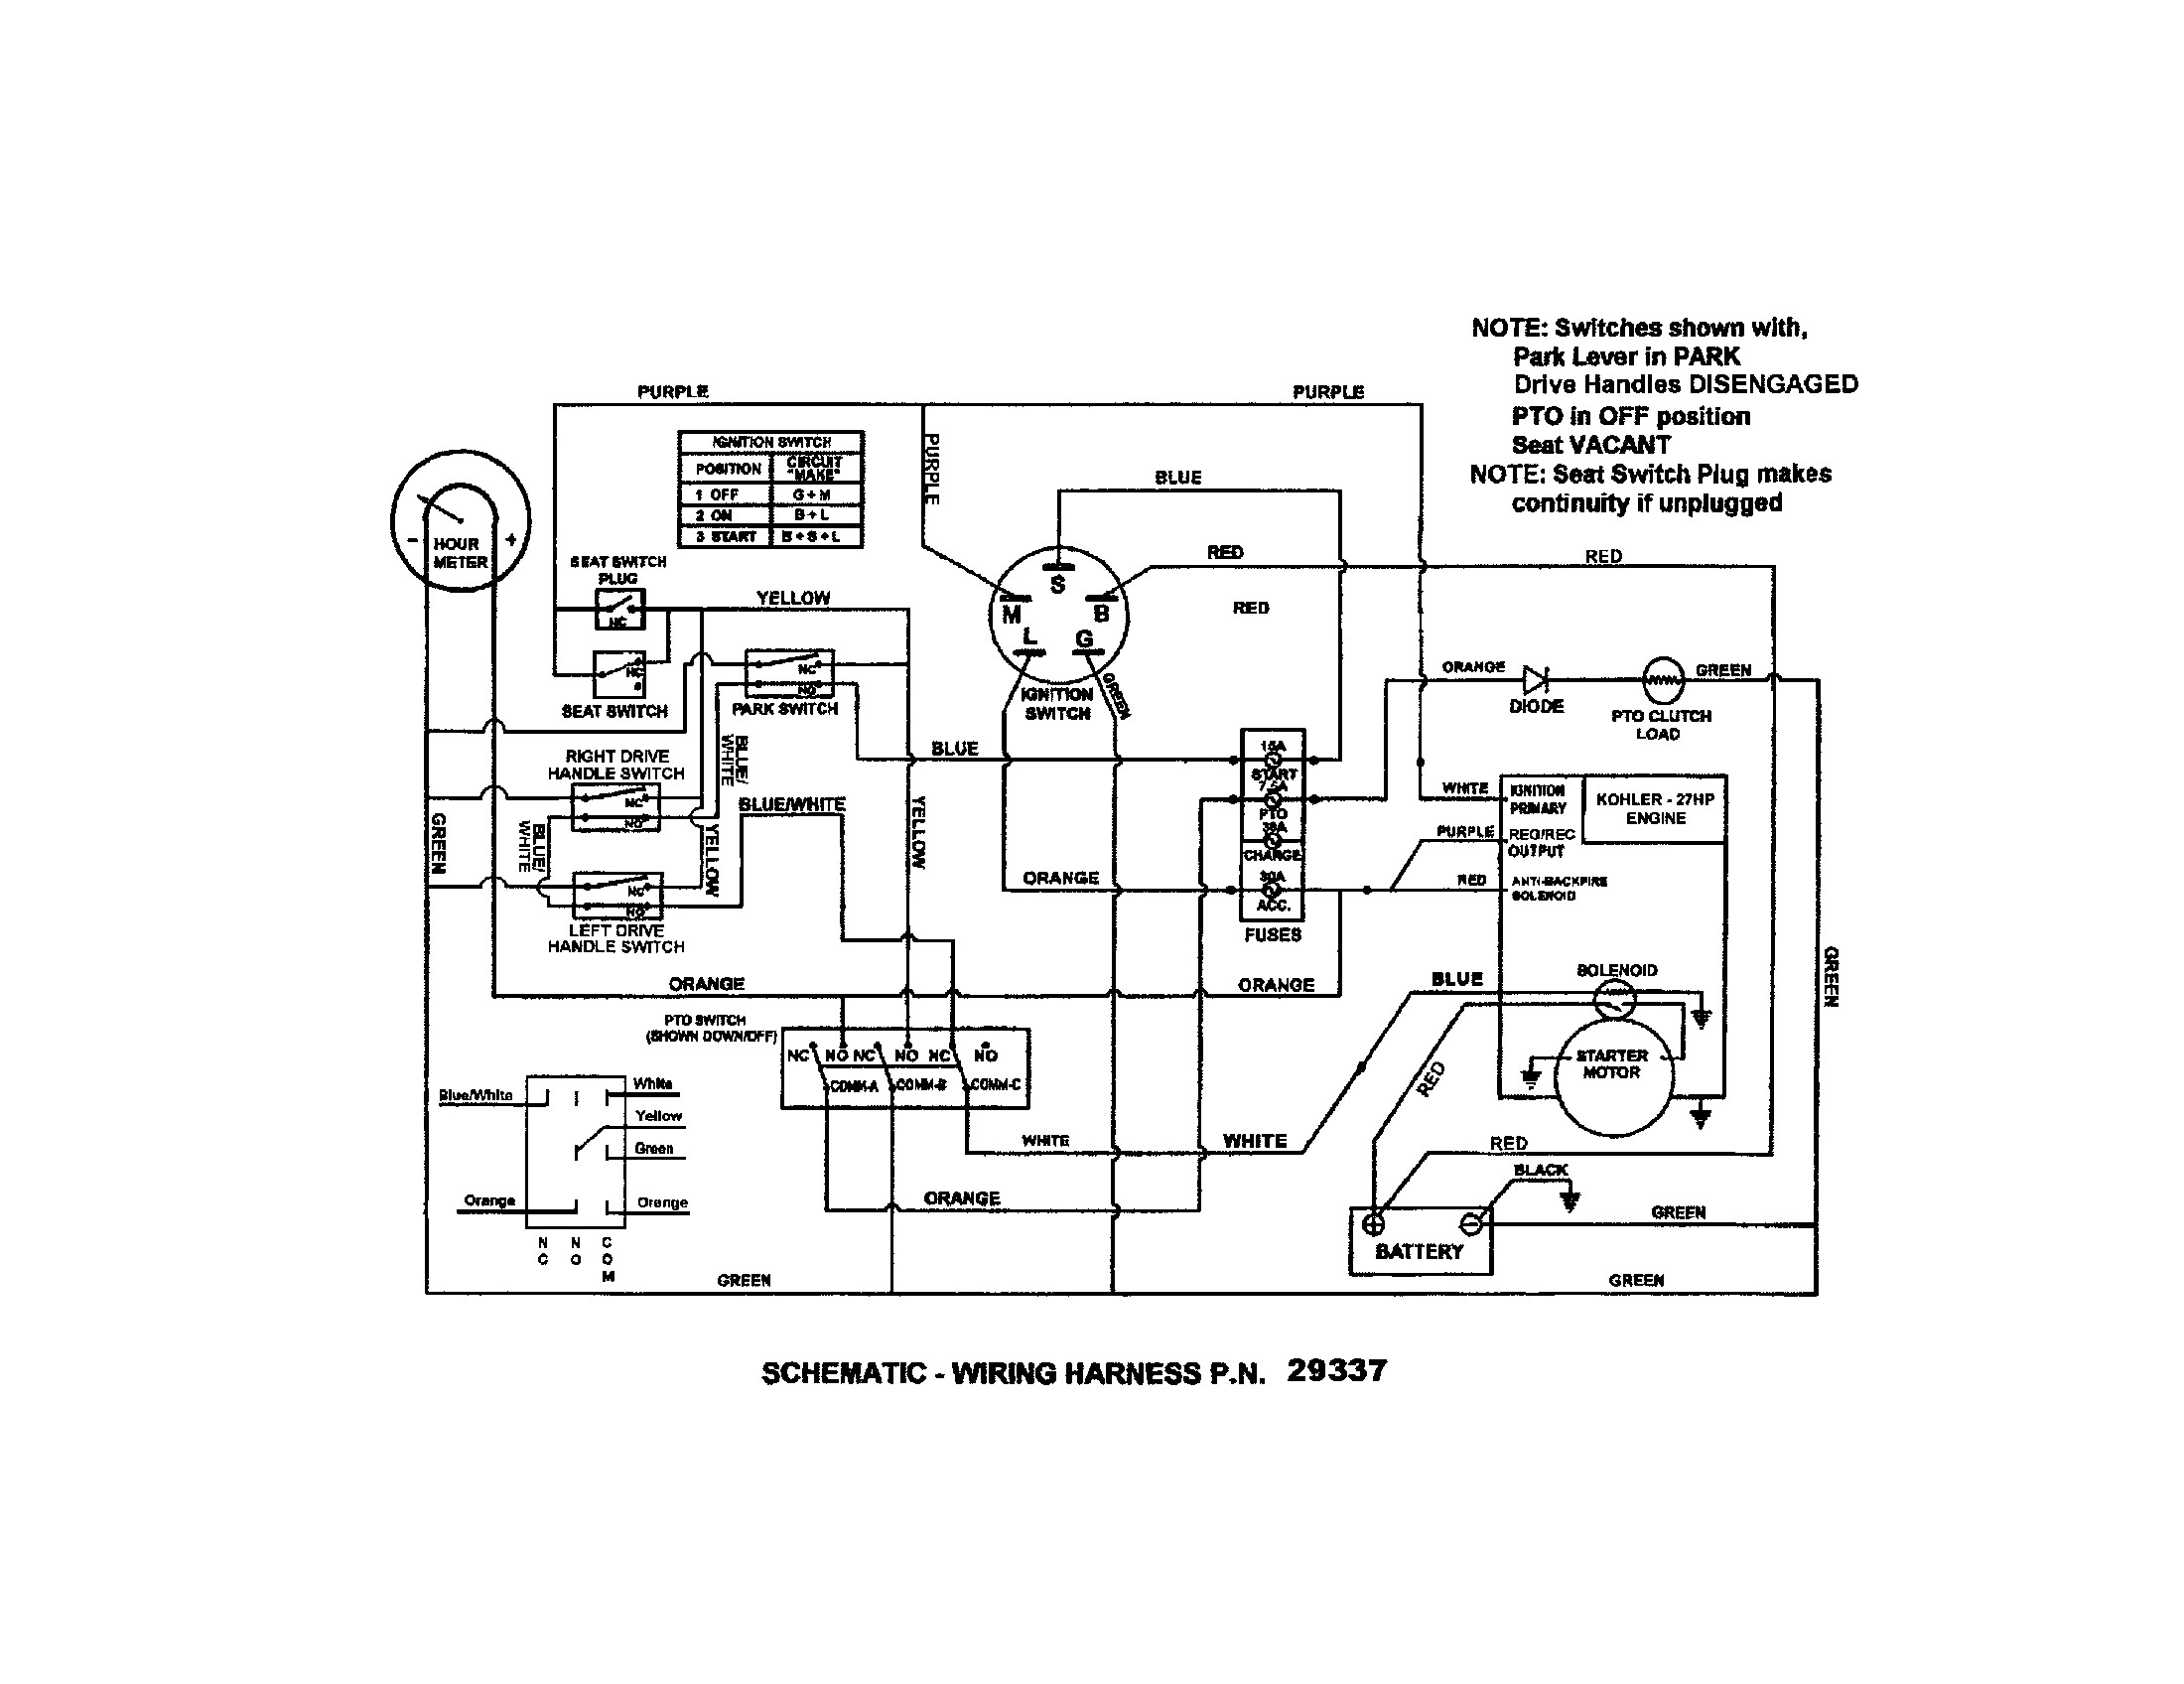 snapper rear engine rider wiring diagram my wiring diagram 1987 ford f-150 wiring diagram 1987 ford f-150 wiring diagram 1987 ford f-150 wiring diagram 1987 ford f-150 wiring diagram